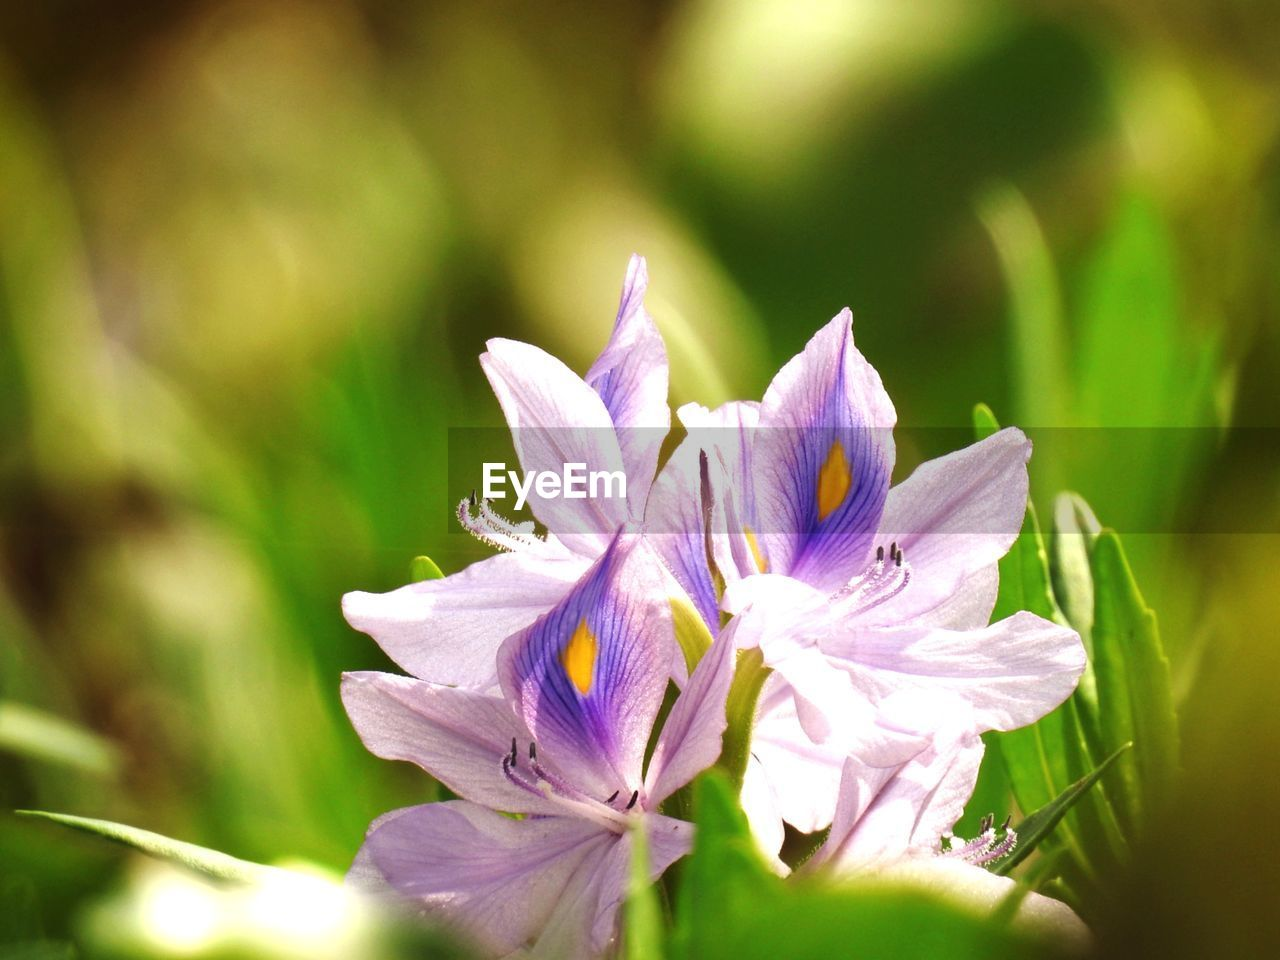 flower, flowering plant, plant, vulnerability, freshness, fragility, beauty in nature, petal, growth, close-up, flower head, inflorescence, selective focus, day, no people, nature, purple, outdoors, sunlight